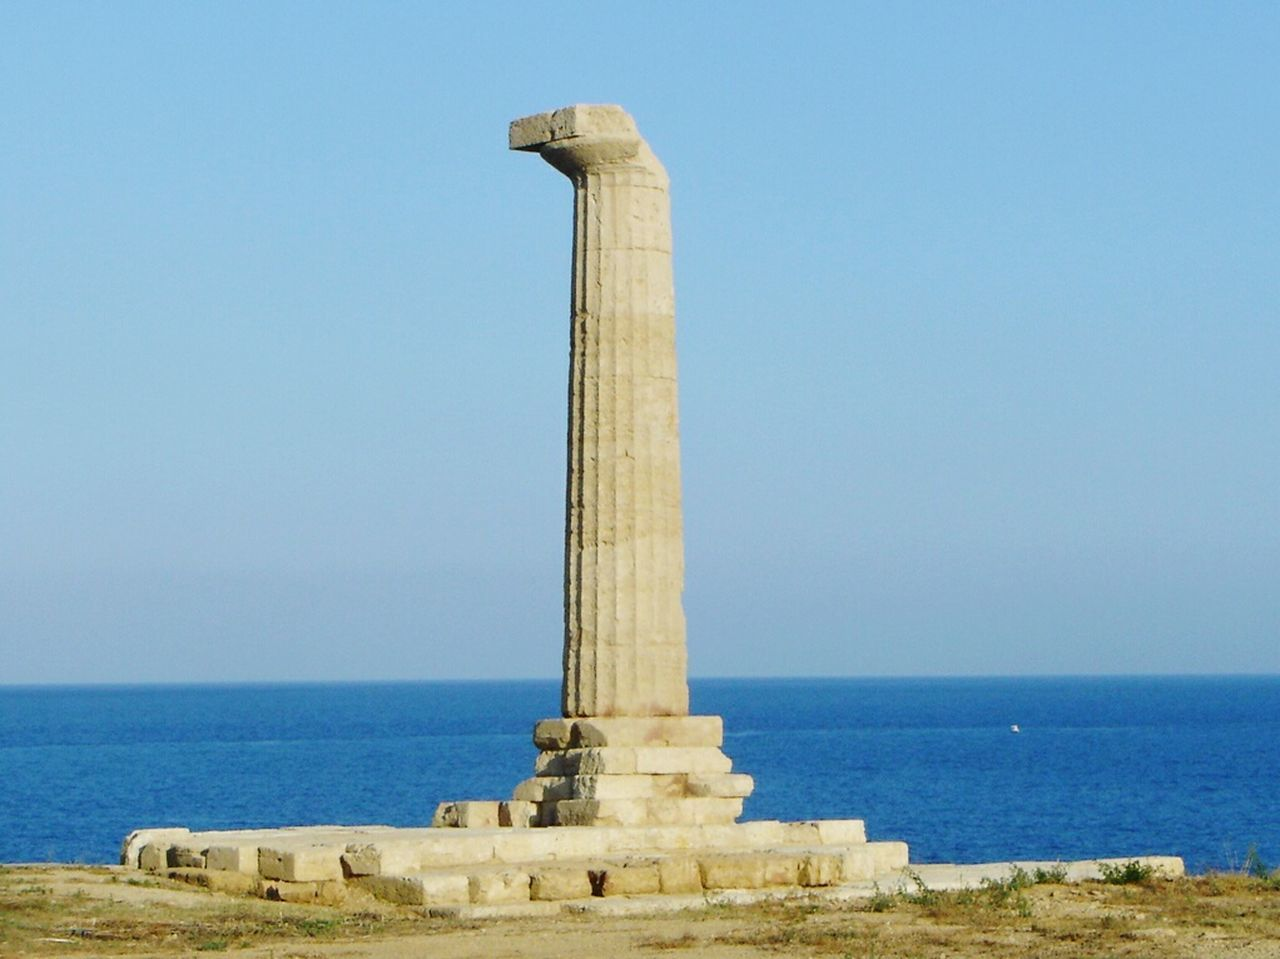 Blue Sea Travel Destinations No People Architecture Greek Column Southern Italy Calabria Archeology Magna Grecia